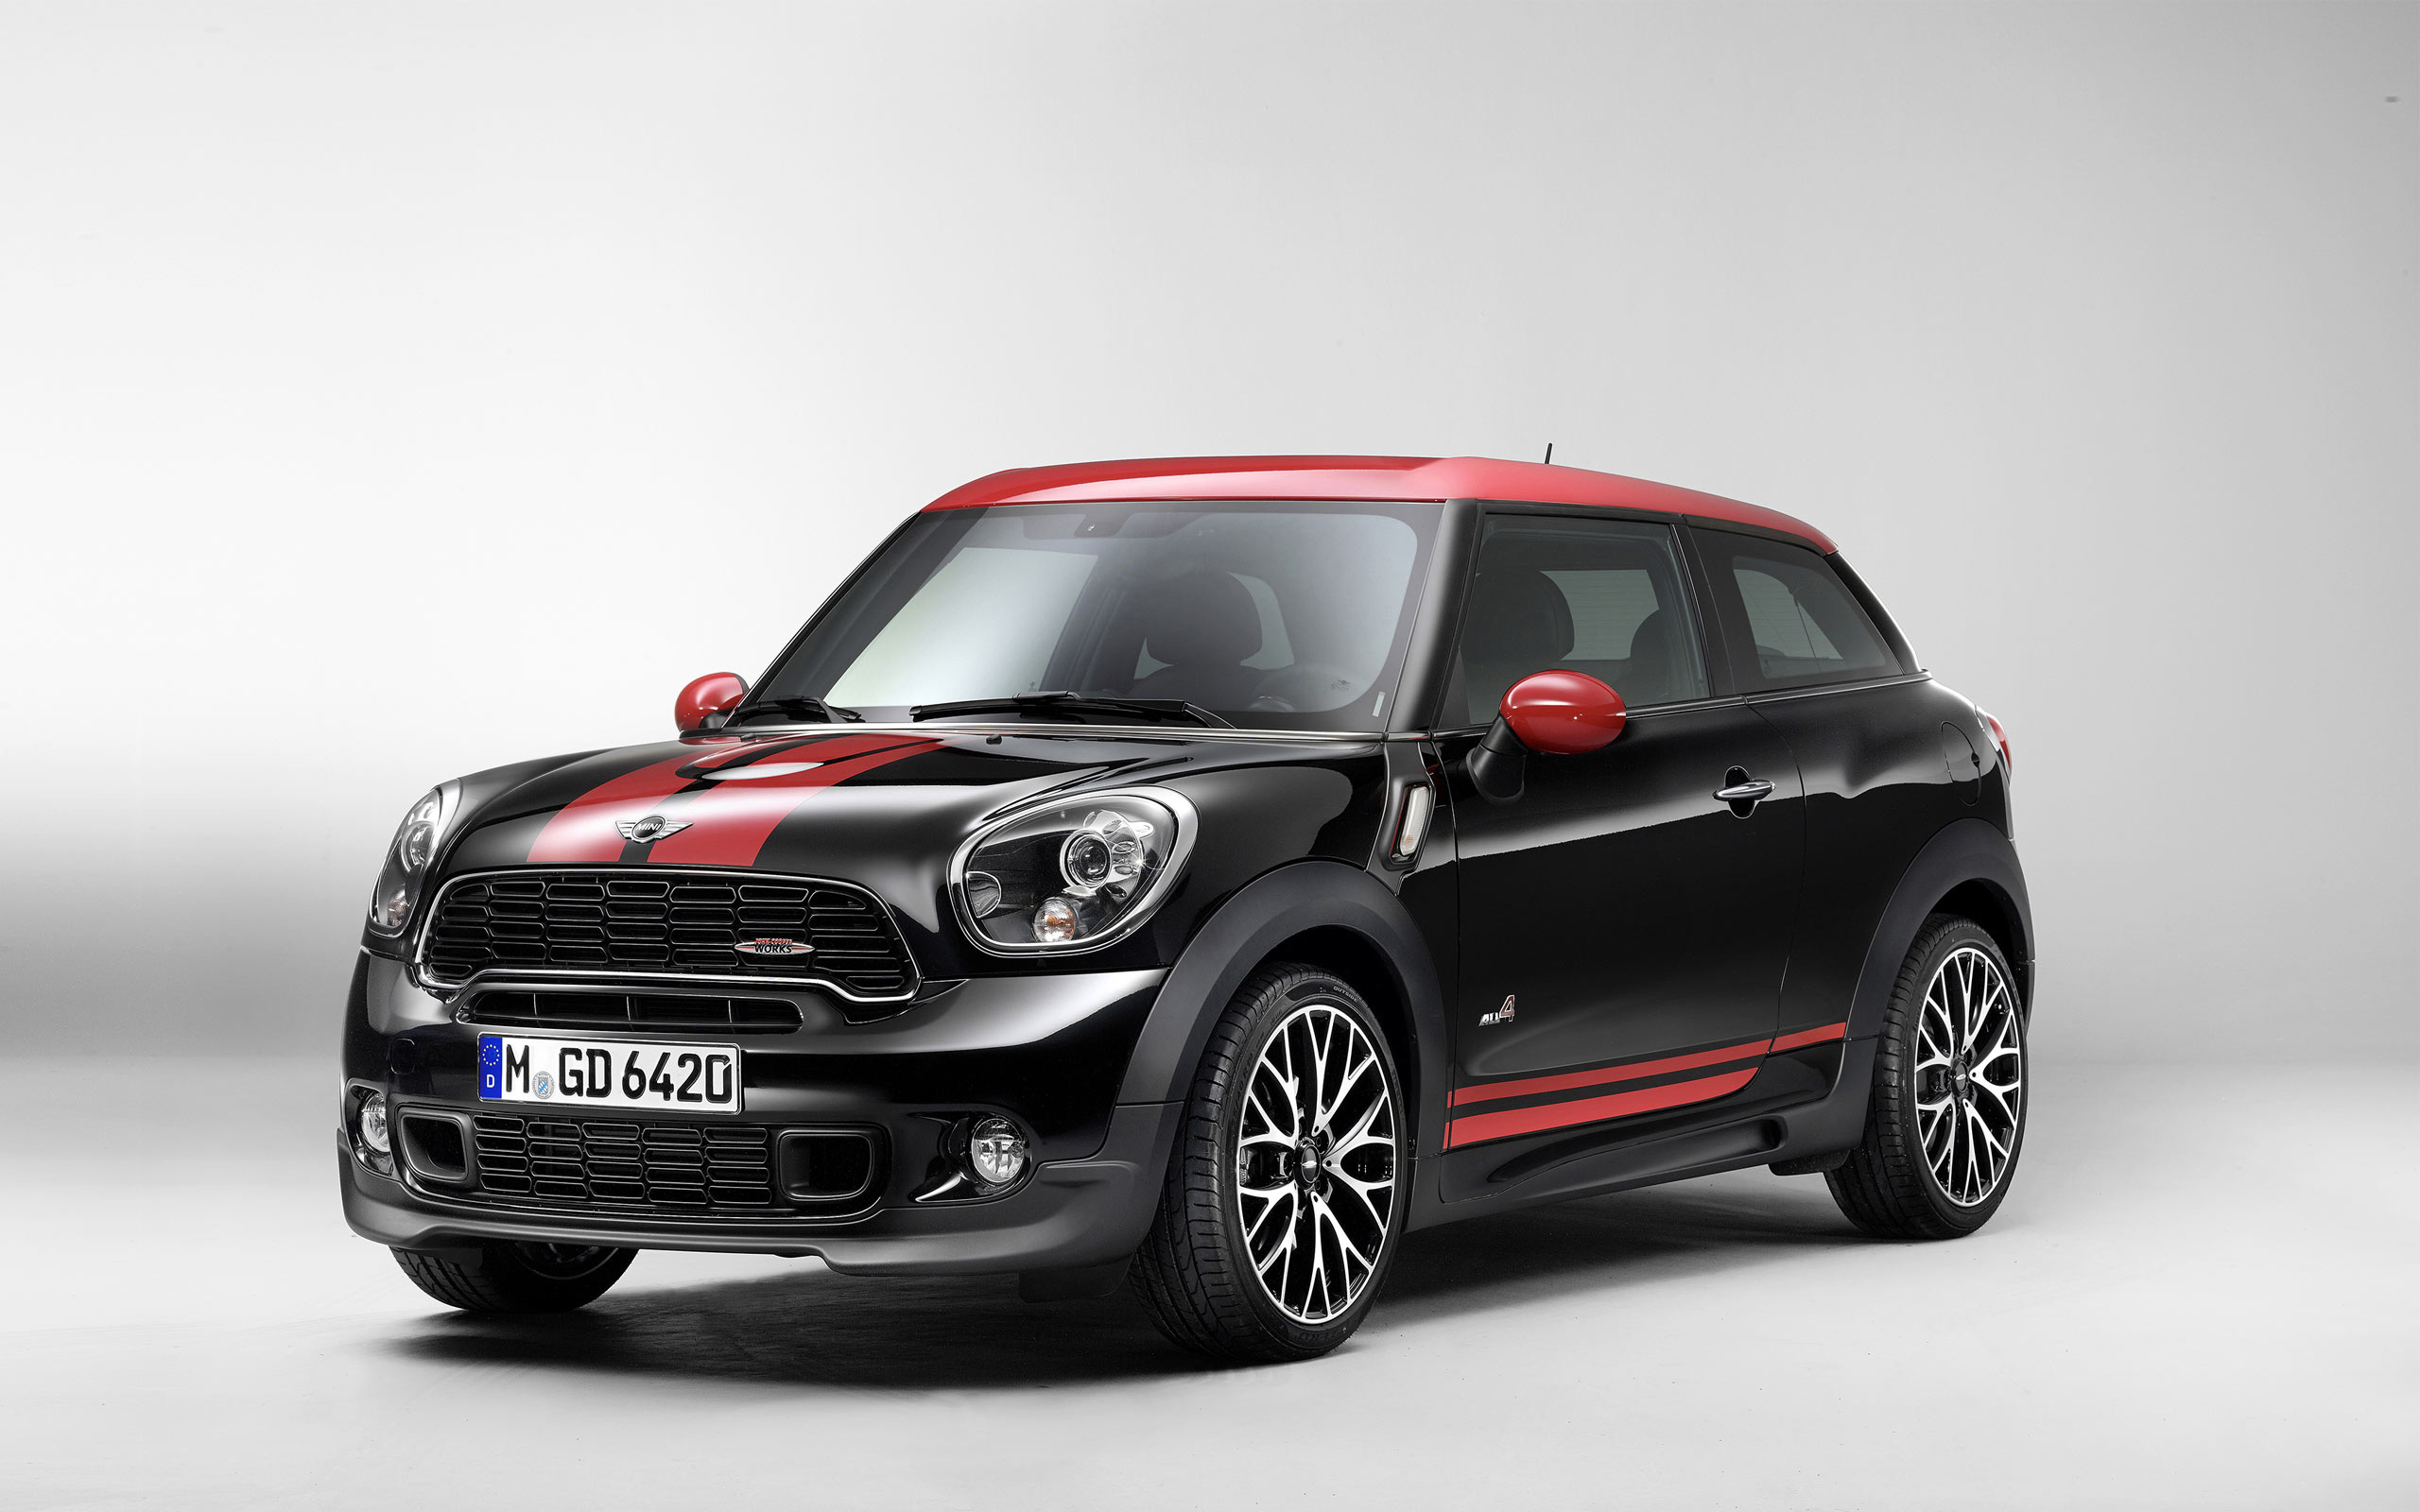 2014 mini john cooper works paceman wallpaper hd car wallpapers id 3231. Black Bedroom Furniture Sets. Home Design Ideas